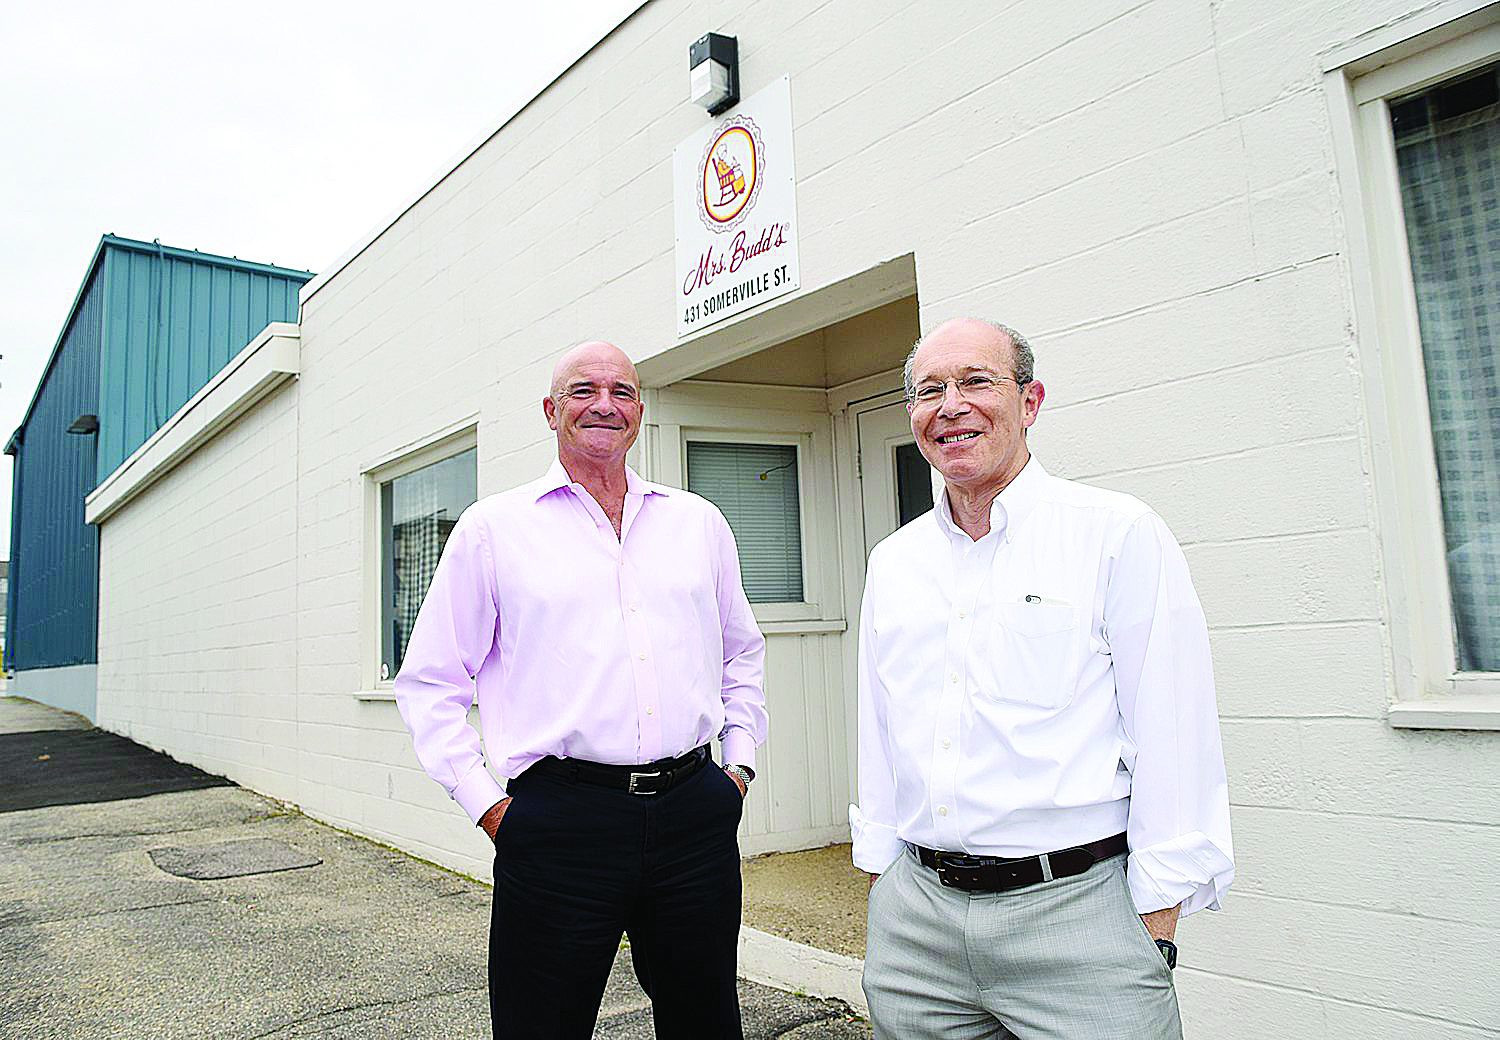 Mrs. Budd's owners Leo Sprecher, right, and Curt Marcott in front of the company's Manchester plant on Somerville Street on Tuesday.(DAVID LANE/UNION LEADER)